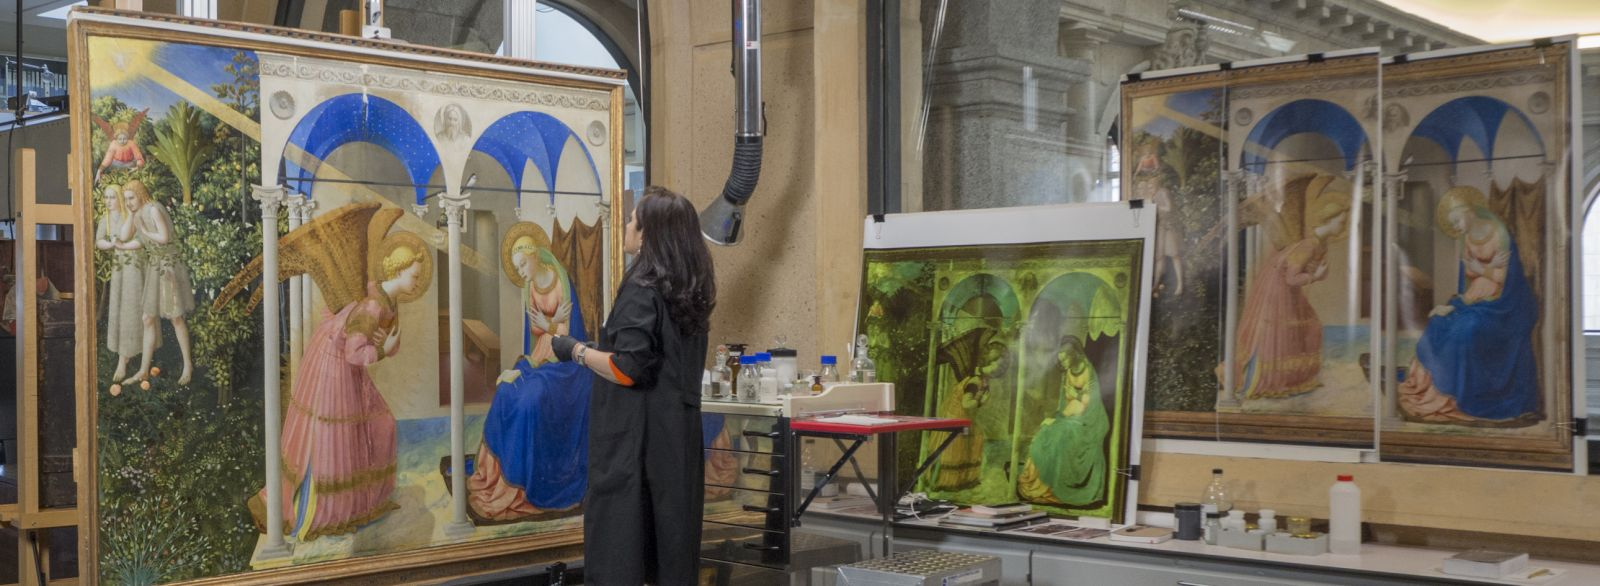 Contribute to the Restoration of The Annunciation altarpiece